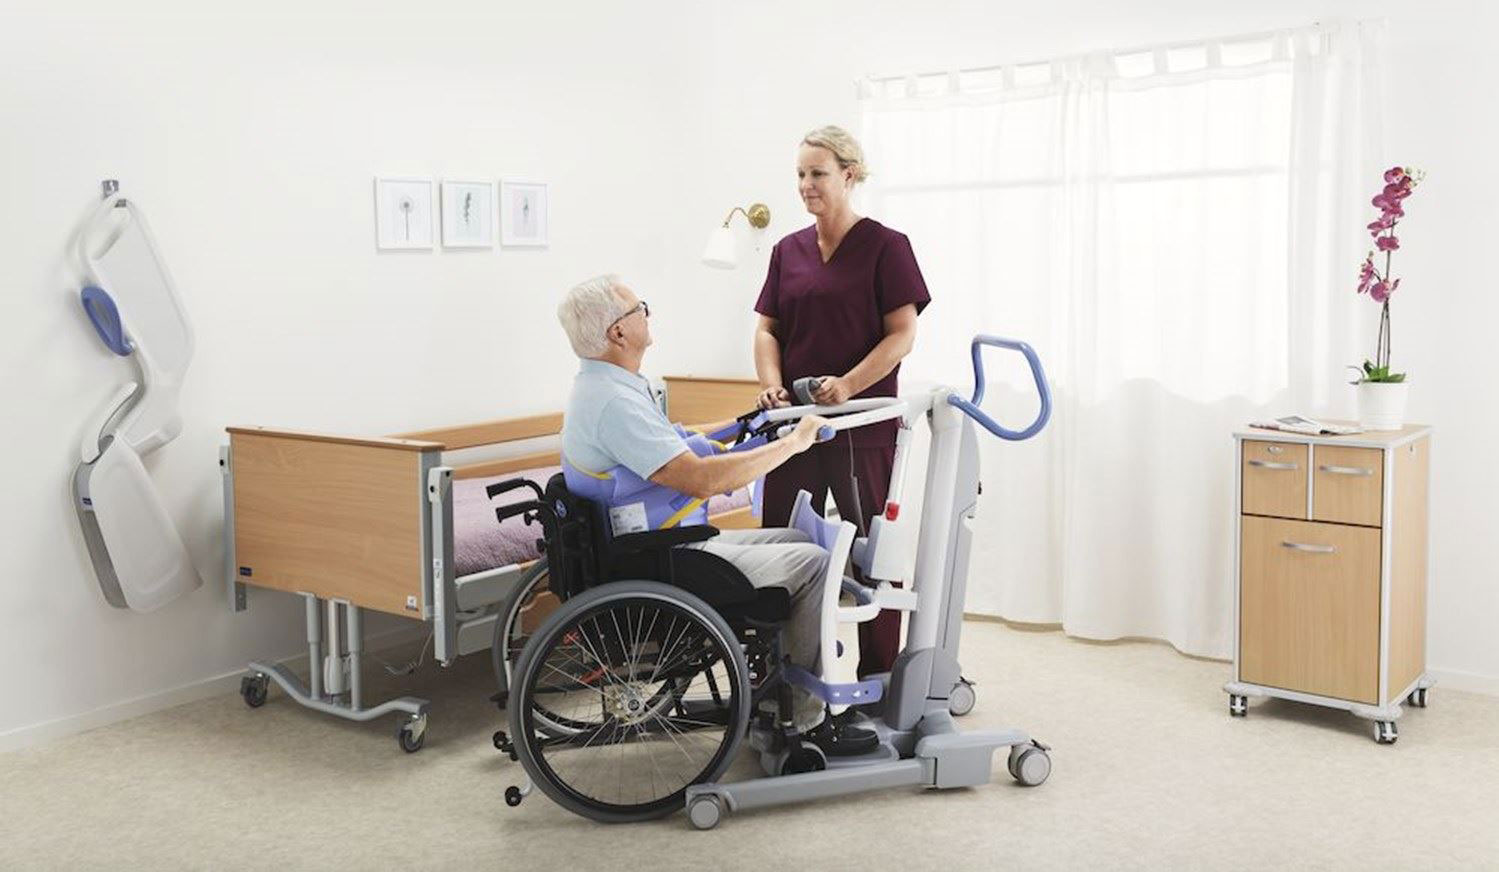 Promoting mobility among patients and residents in care facilities is critical for healthy daily lives